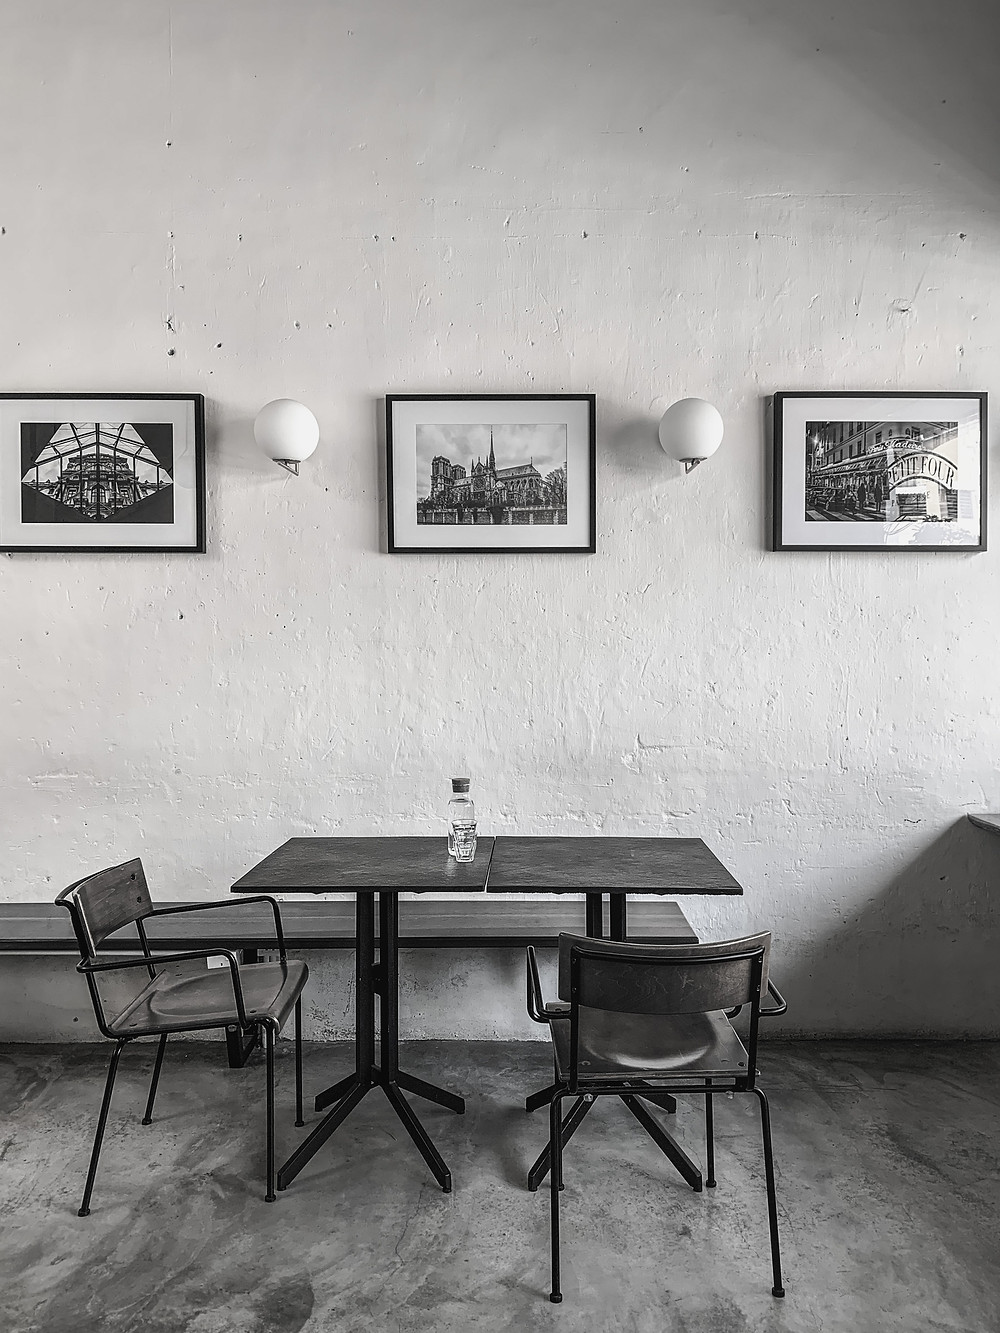 Black & white interior photography: Modern cafe decor of Le Petit Four Patisserie, RollingBear Travels blog.